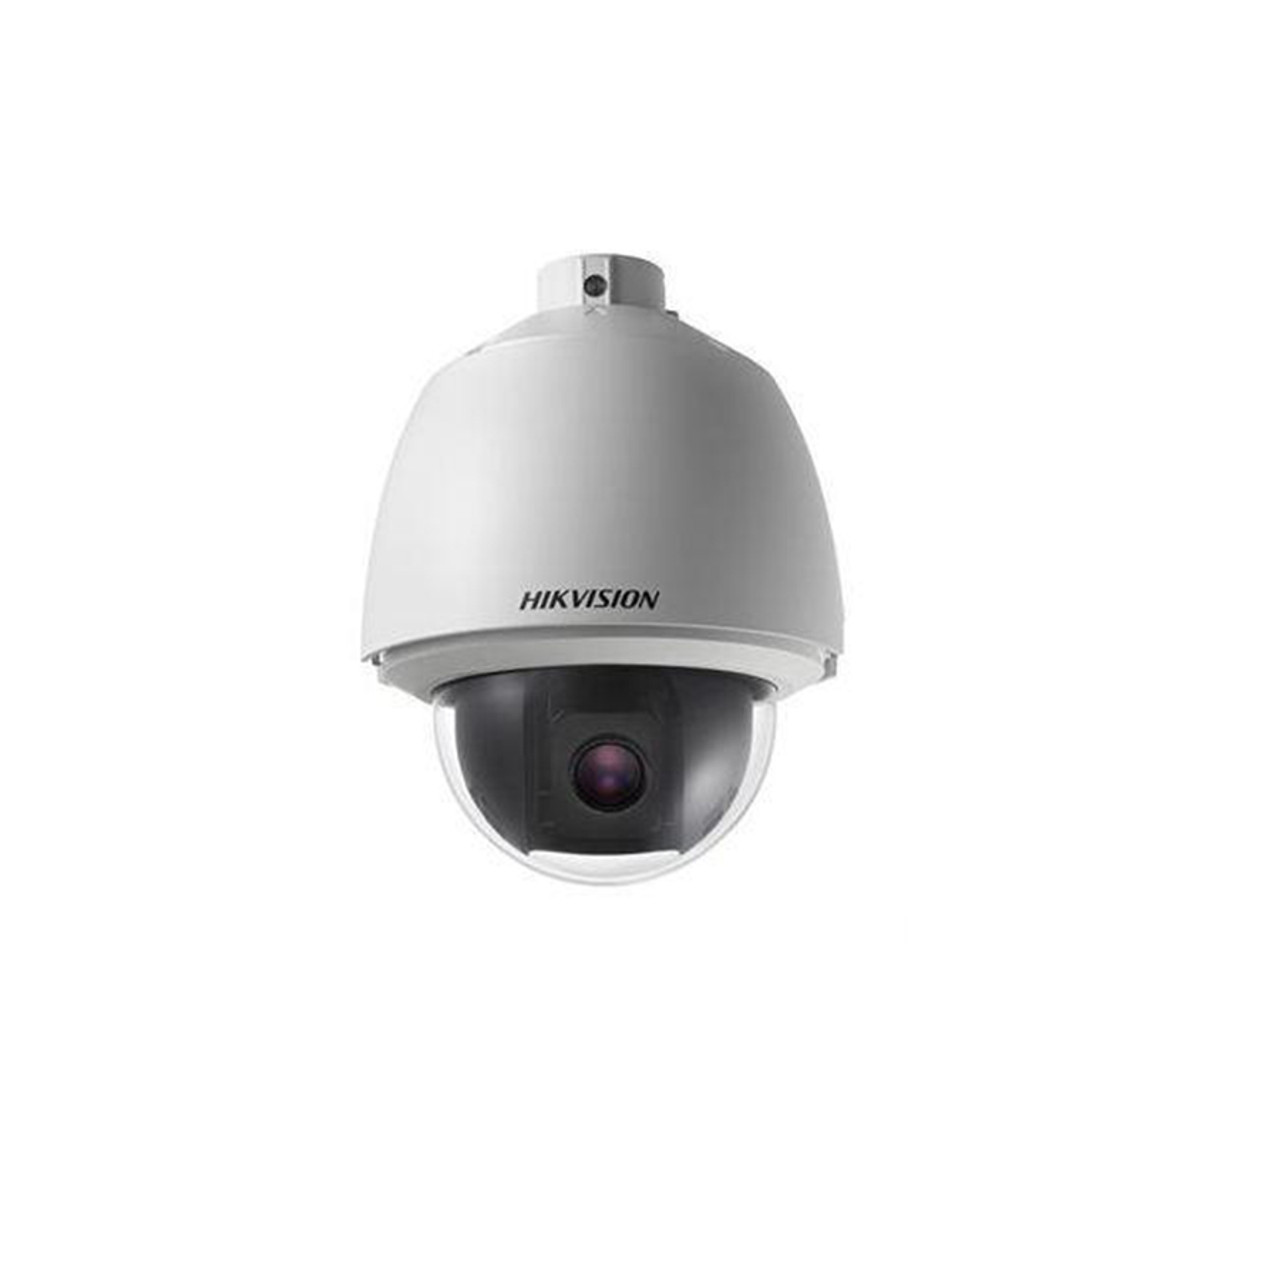 faef24a1159 Hikvision DS-2DE5184-AE 2MP Outdoor PTZ Dome IP Security Camera